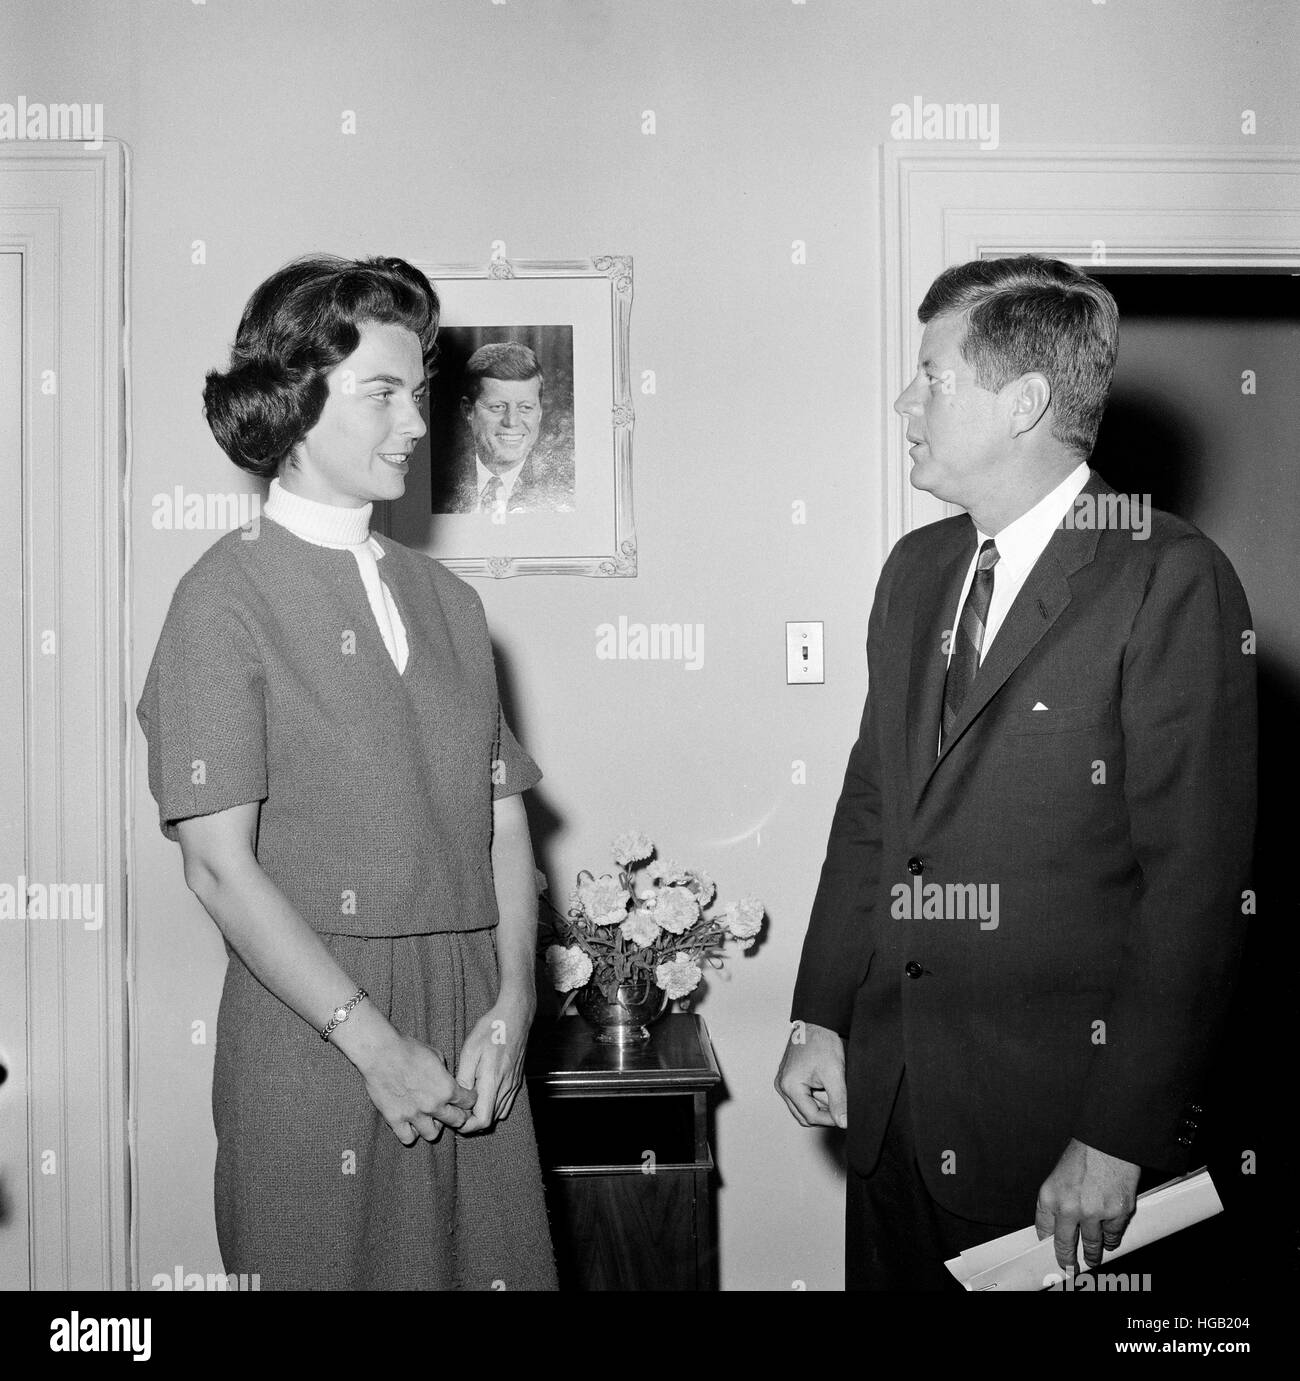 President John F. Kennedy with a former White House staff member. - Stock Image